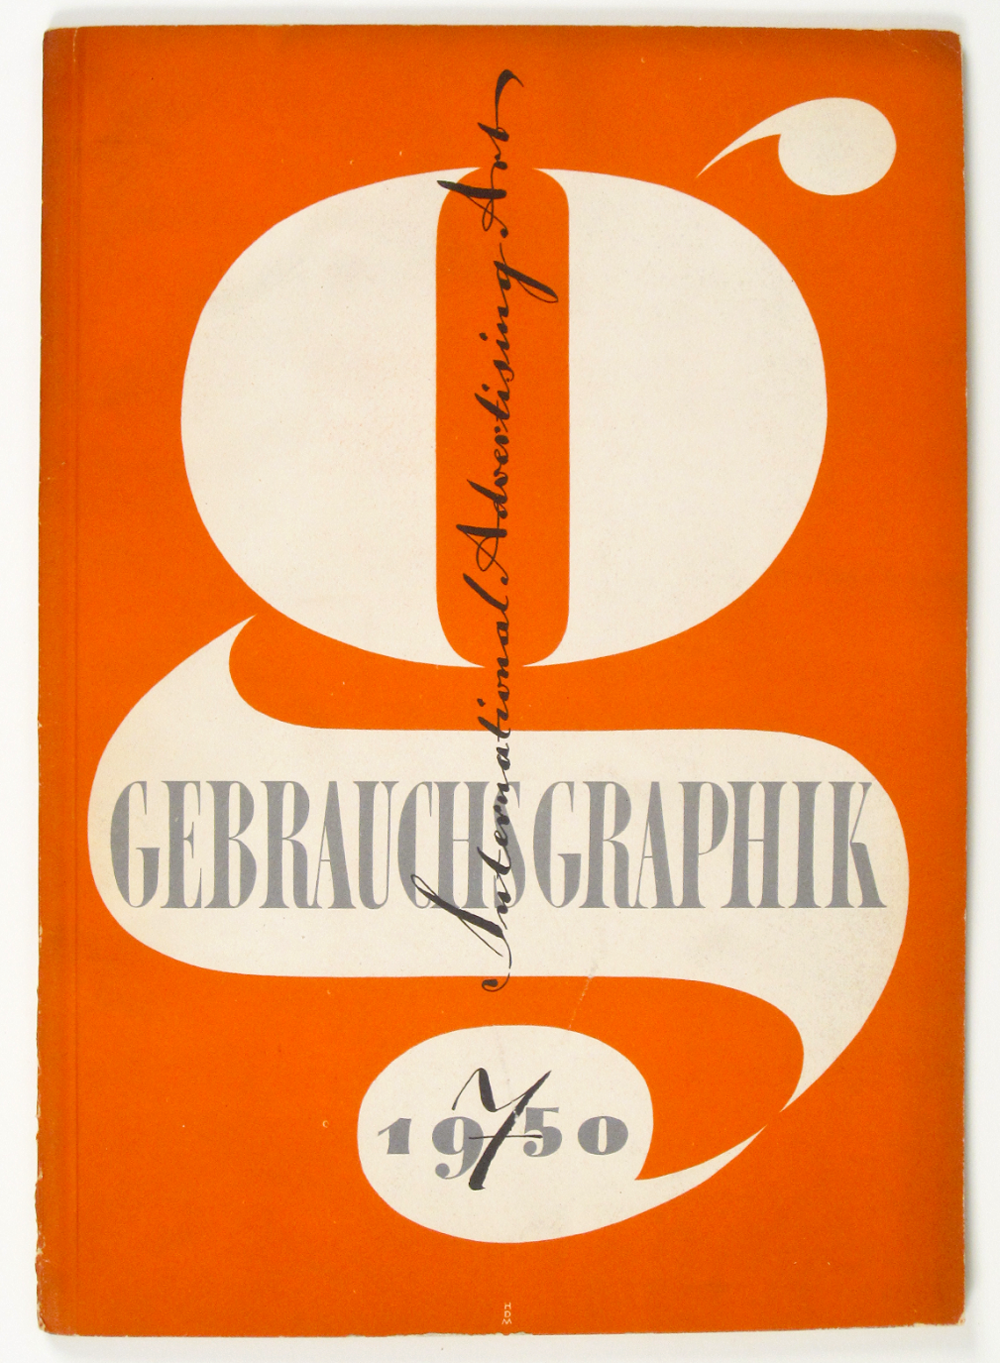 Cover of Gebrauchsgraphik by Heinz Hadem, 1950